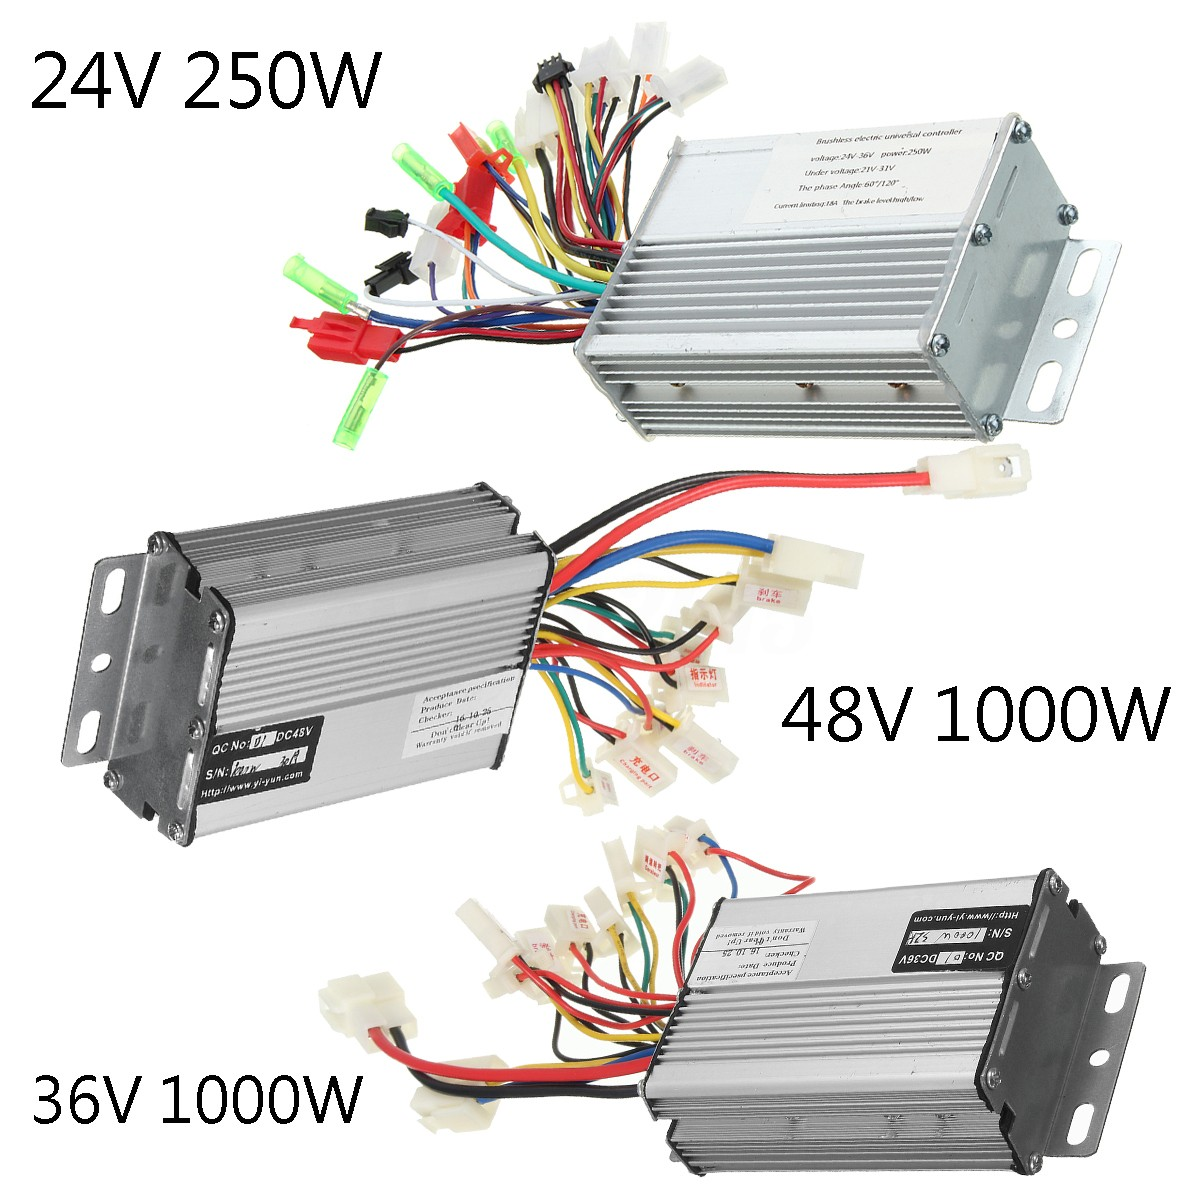 24V 36V 48V 250W 1000W Electric Scooter Speed Controller Motor For Bike  Bicycle